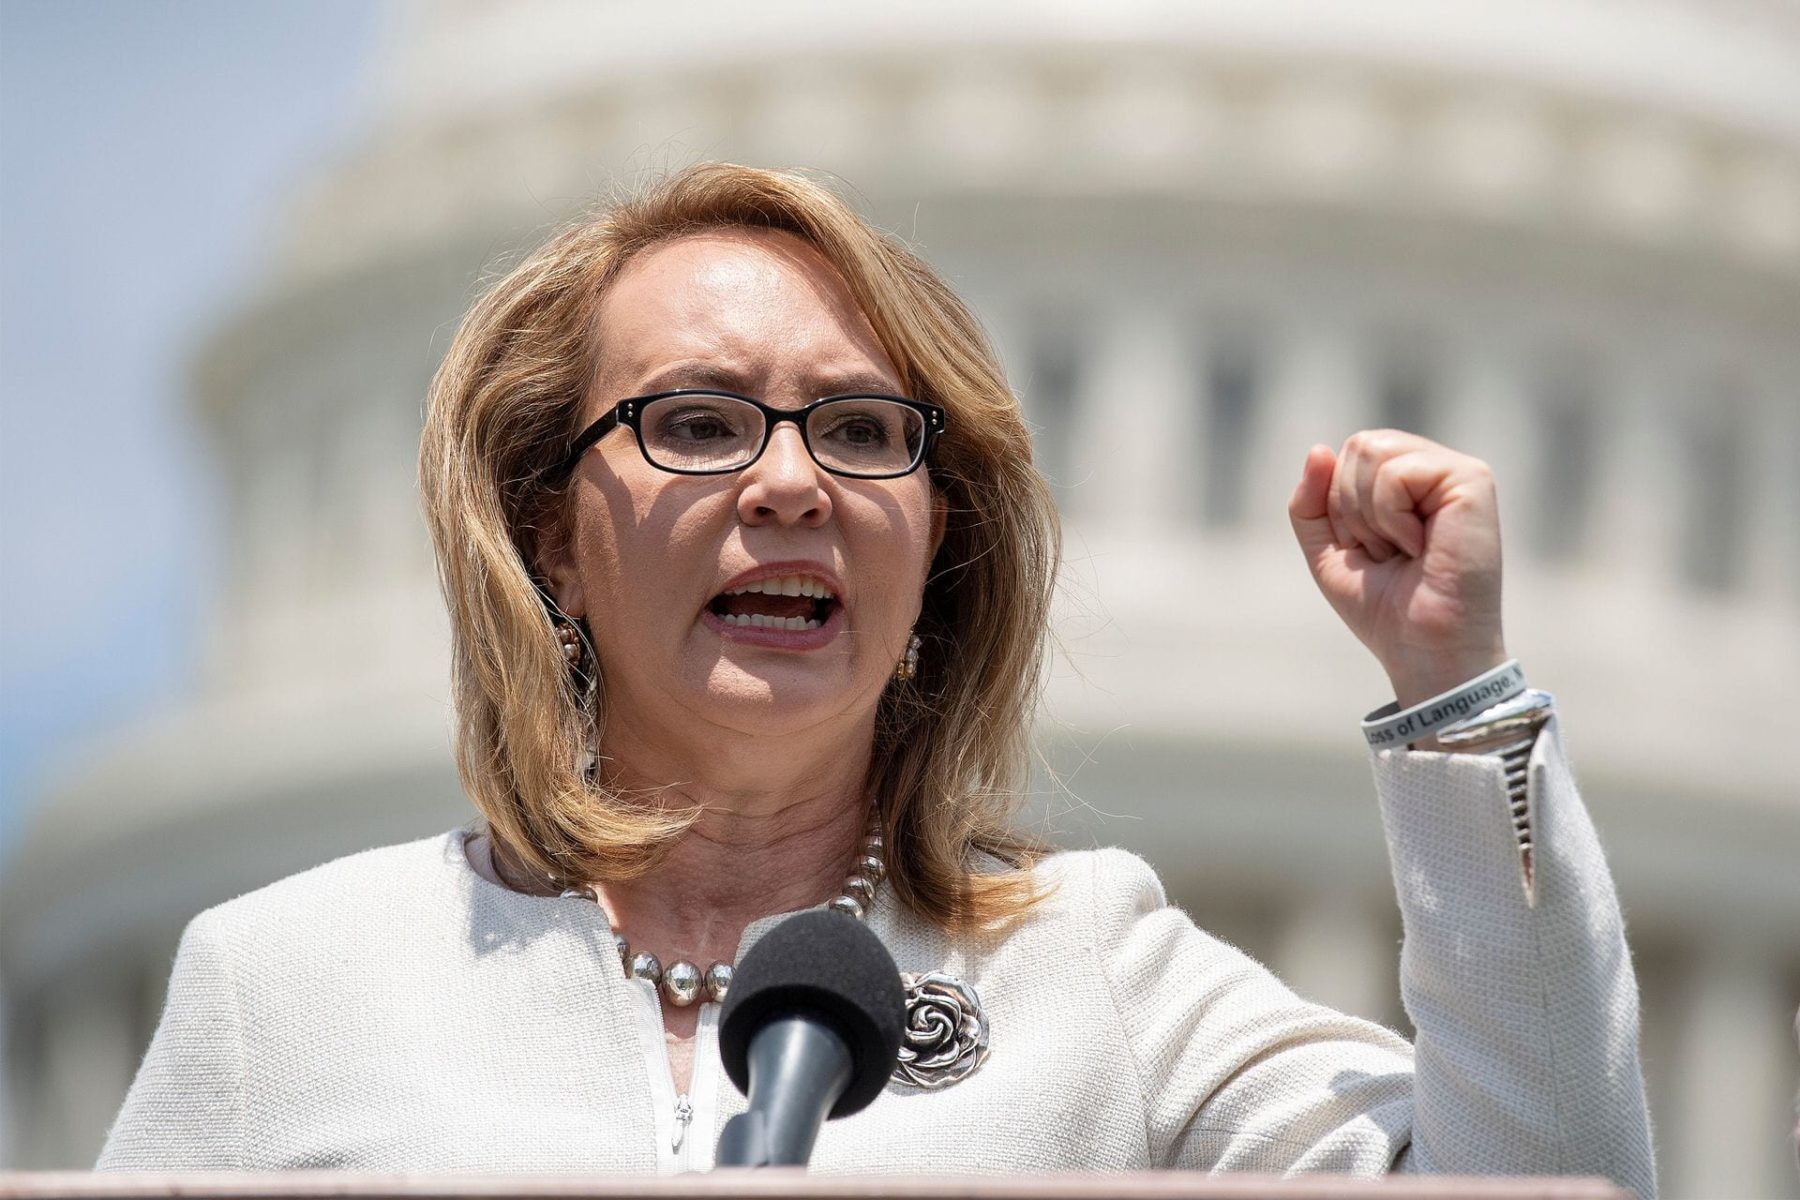 Former US Congresswoman Gabrielle Giffords speaks on Capitol Hill.